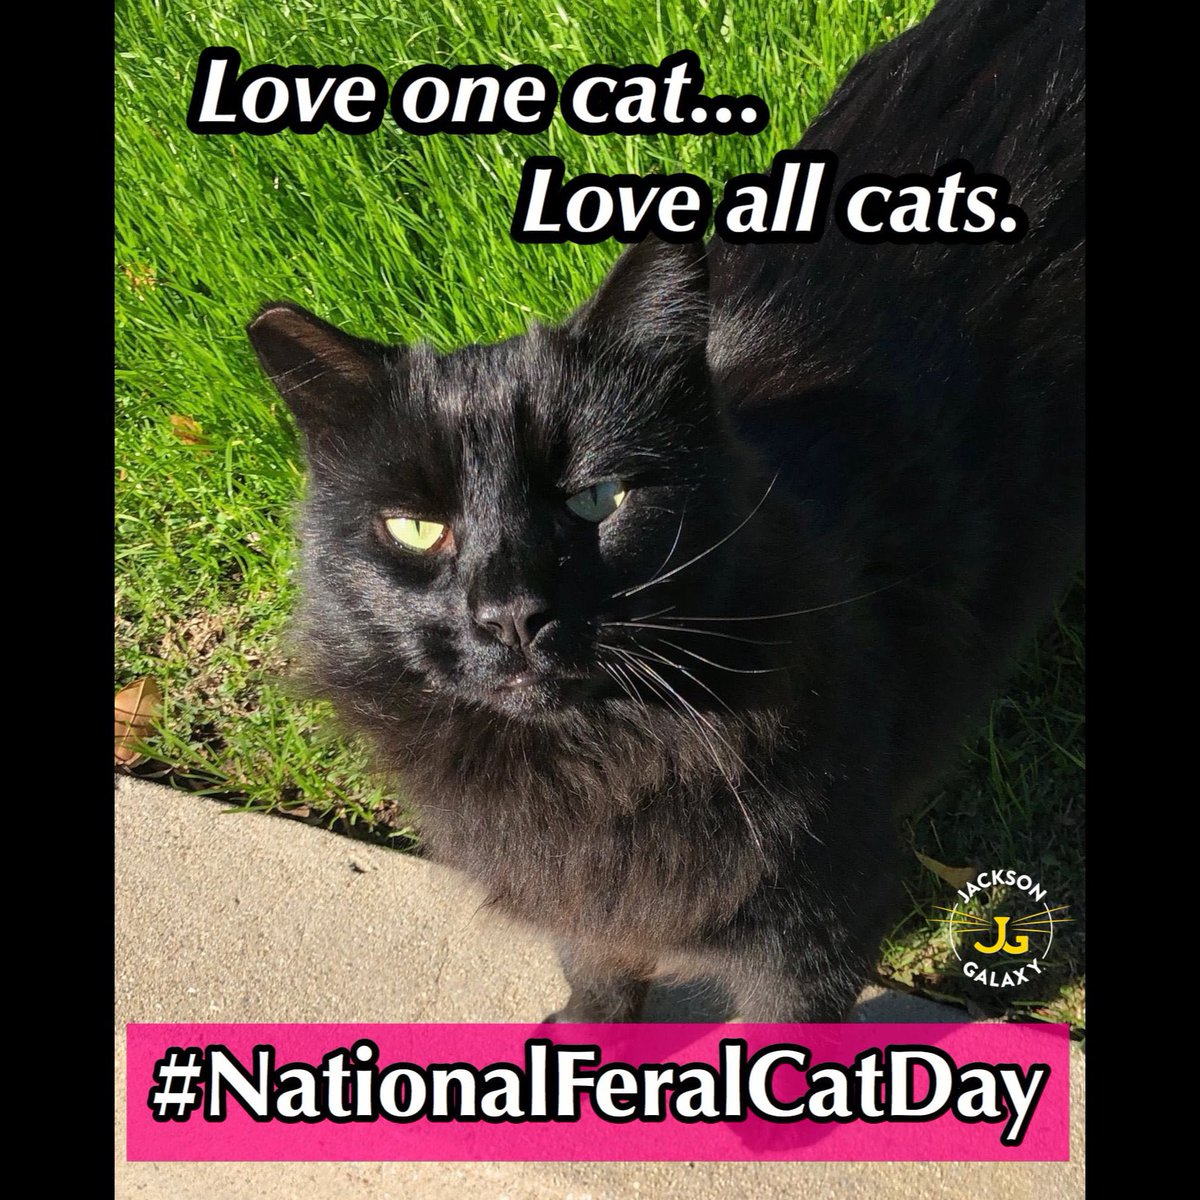 It's #NationalFeralCatDay on this #FeralFriday! @toby_rules1 @MaineCoonCatsOH @LittleMaineCoon  @JusticeToAll @JoyOfCats @TheCatMalice @berylcoon @GeneralCattis @LordGraydon @ridley_aka @Ophur_Cat https://t.co/dxo11DOj6Y